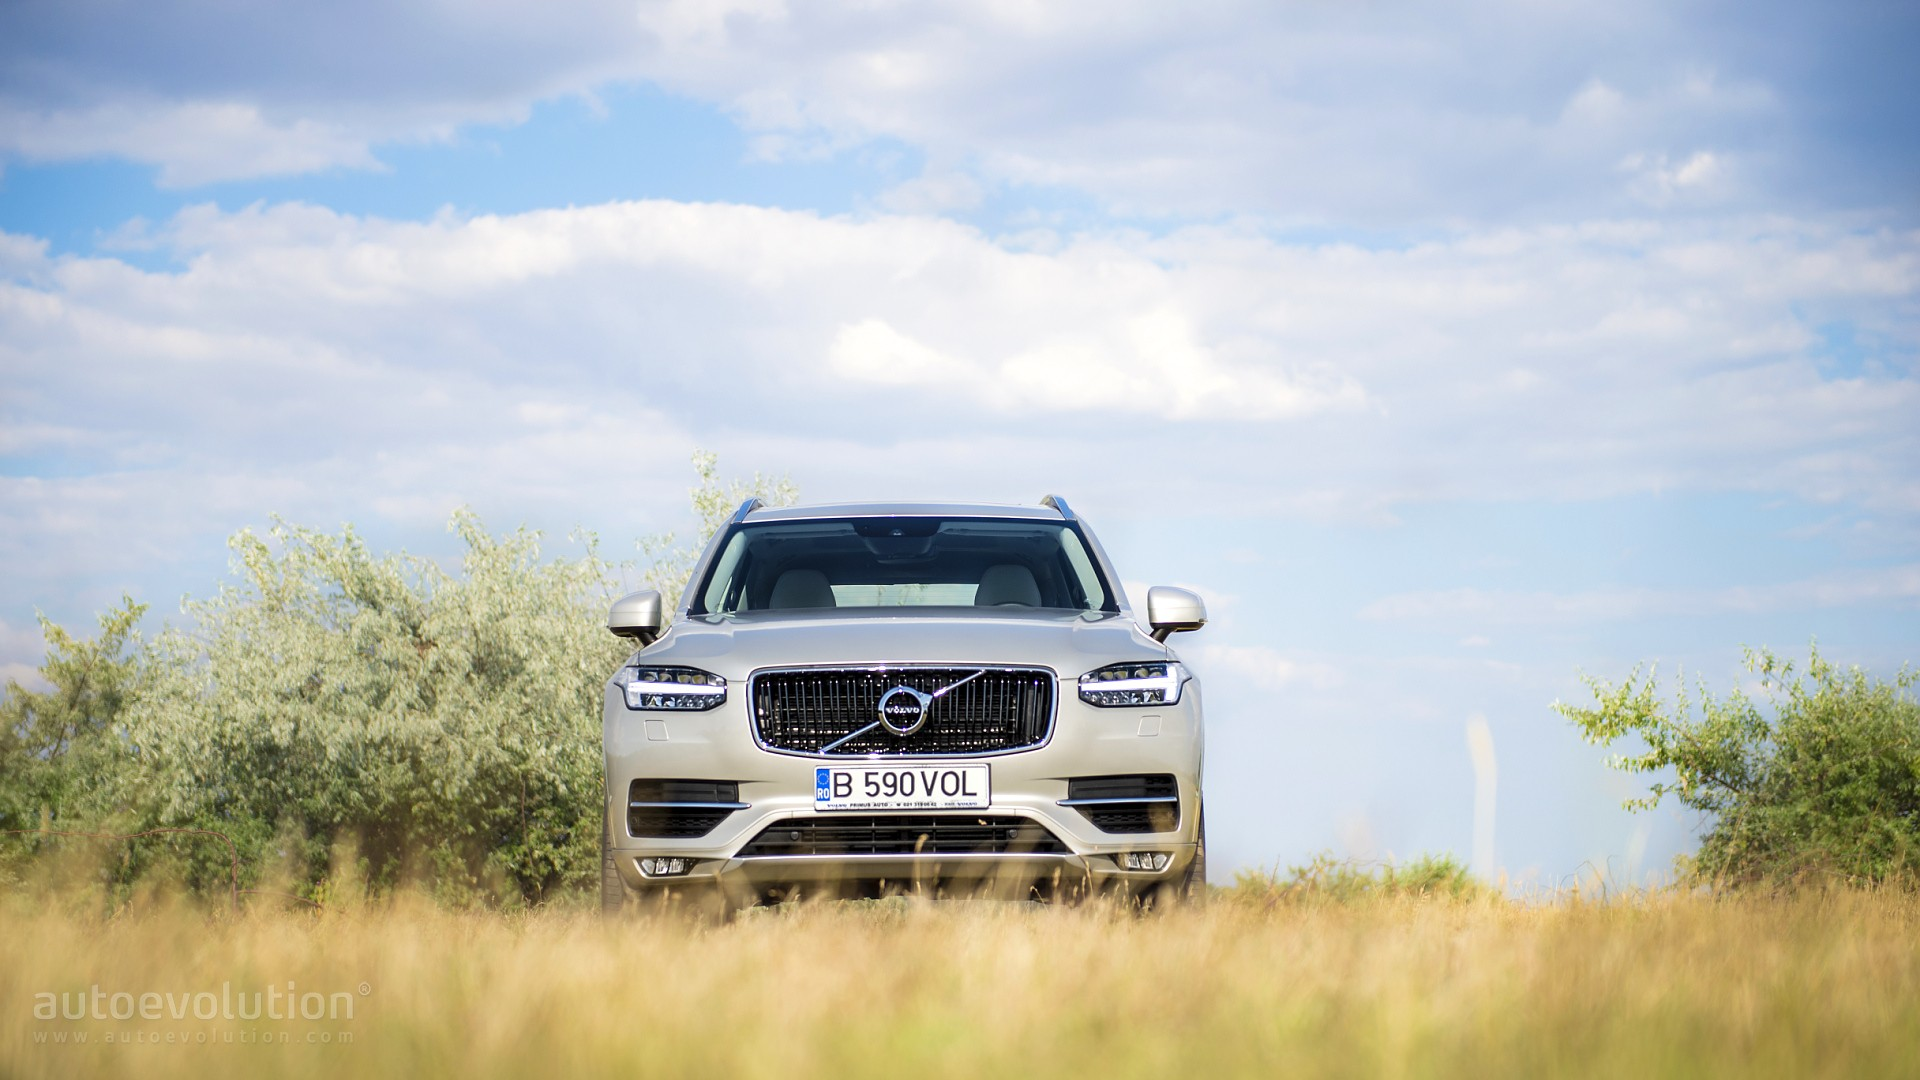 2016 Volvo Xc90 Hd Wallpapers Thor 2 0 Autoevolution